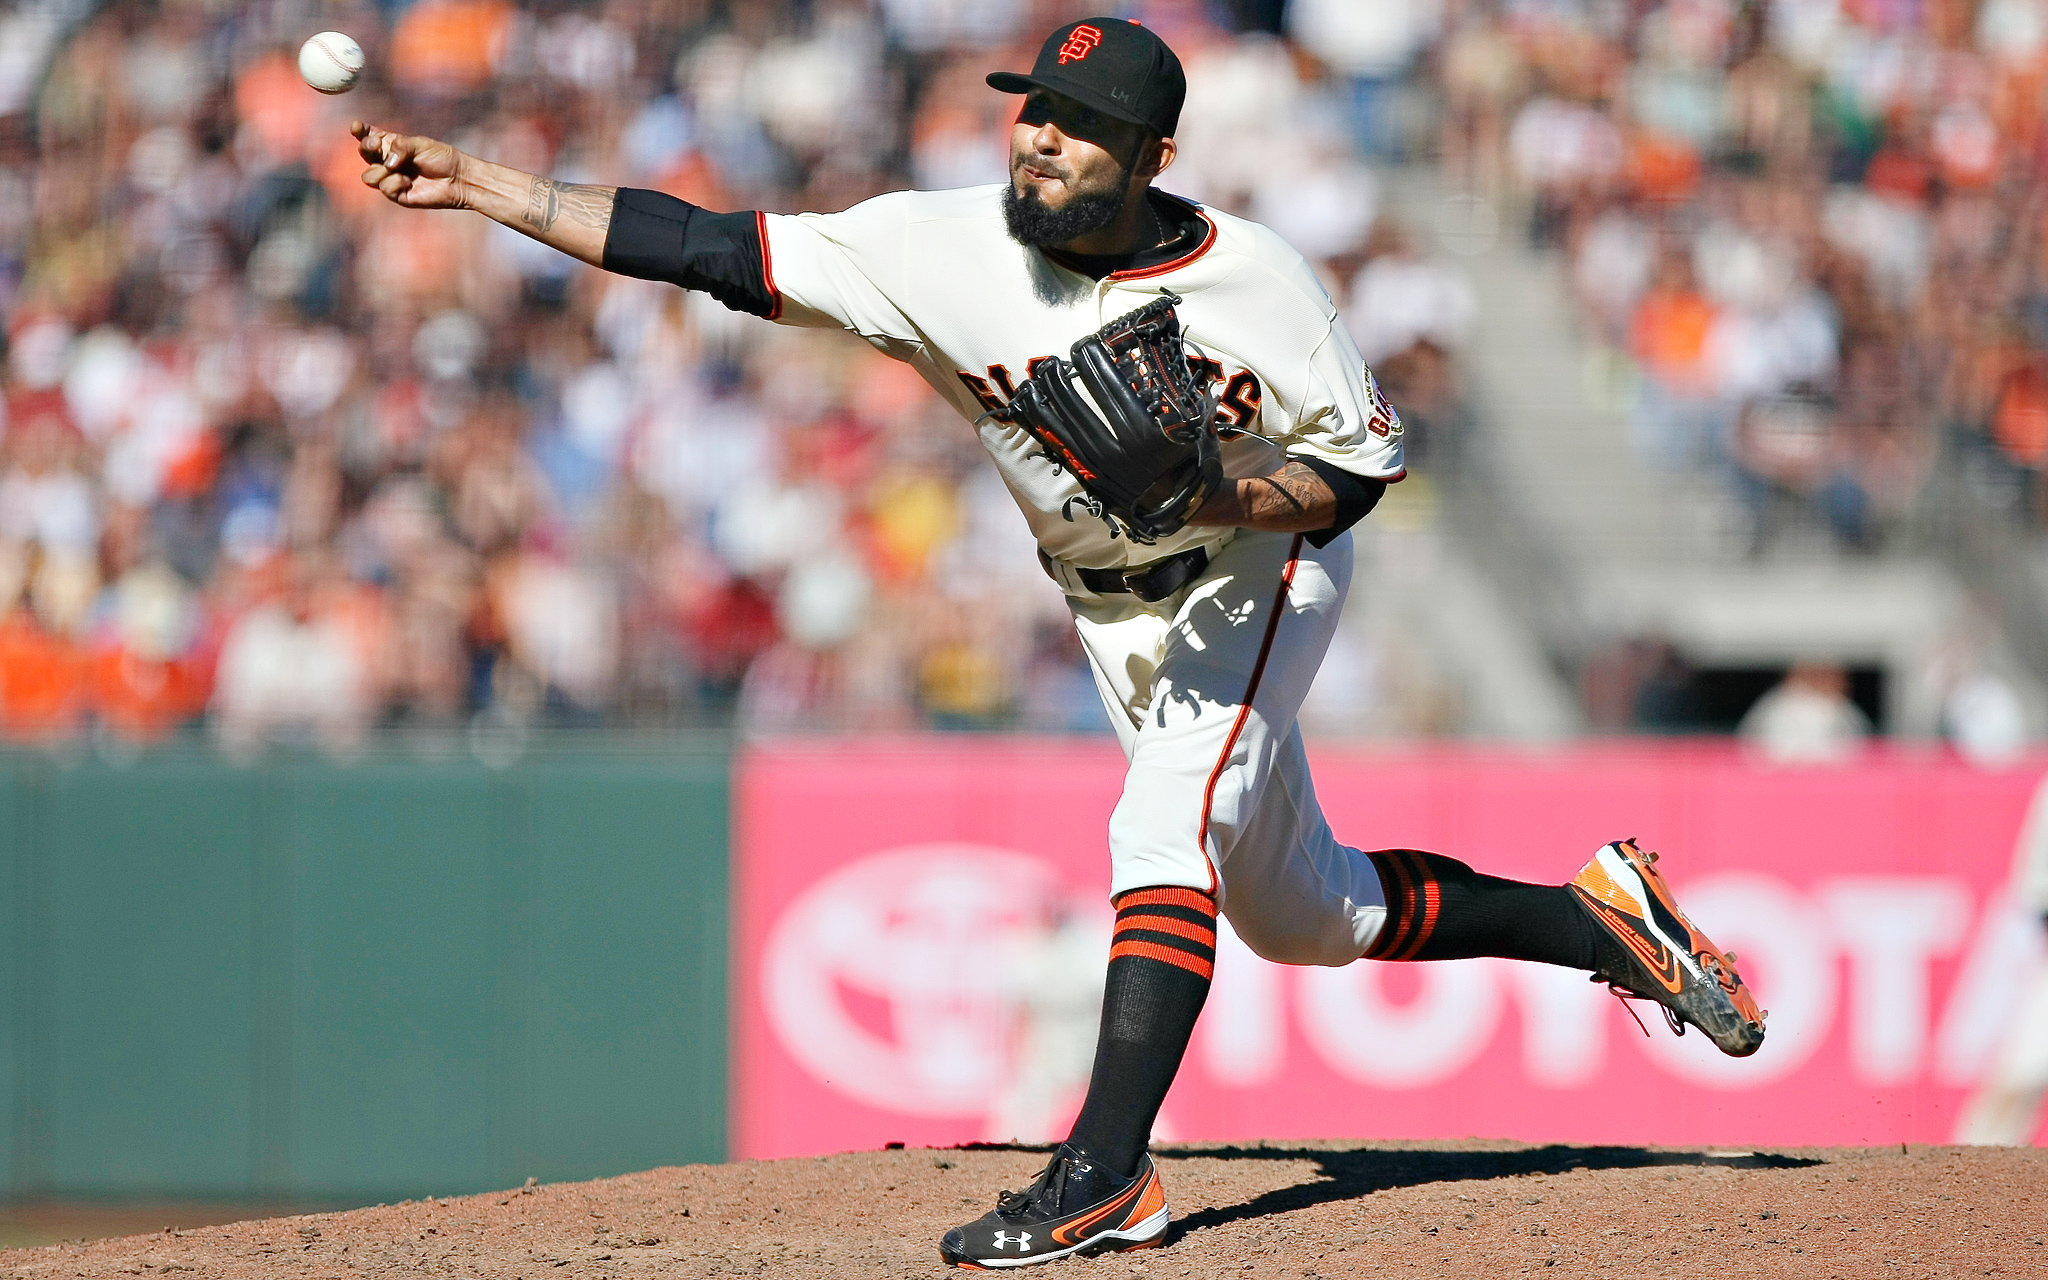 Best Breaking Ball: Sergio Romo